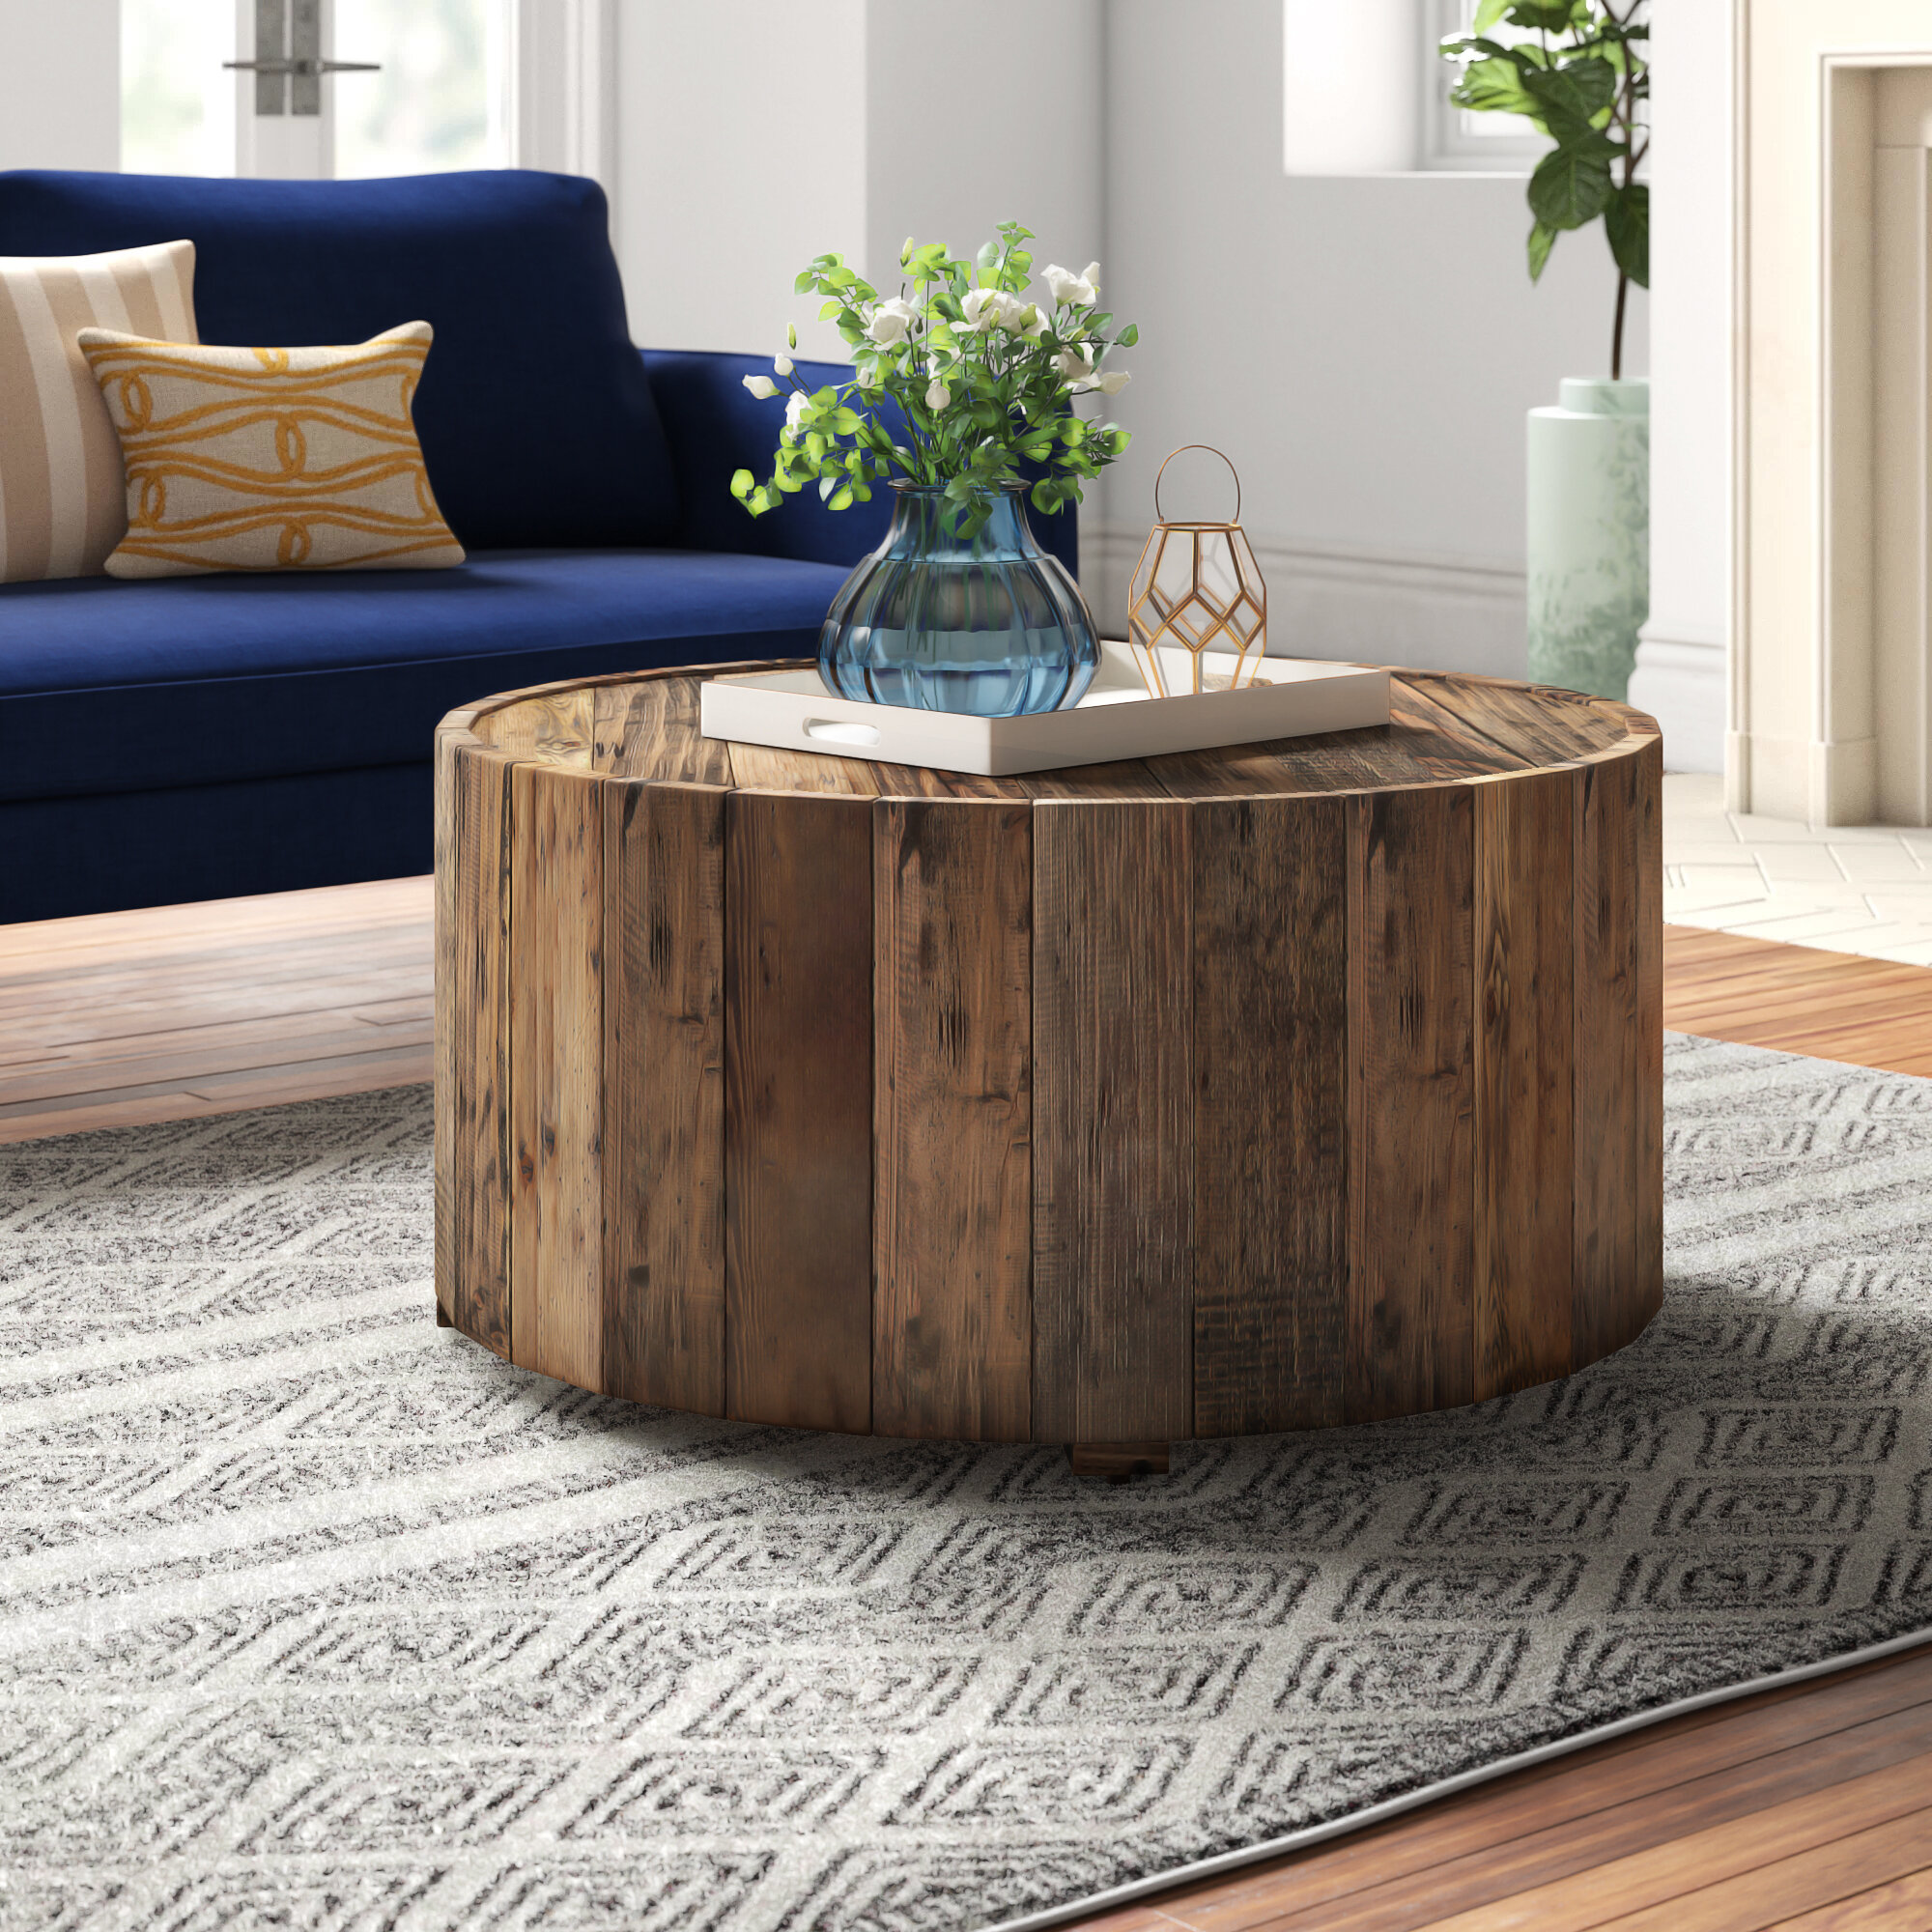 Round Coffee Tables Free Shipping Over 35 Wayfair